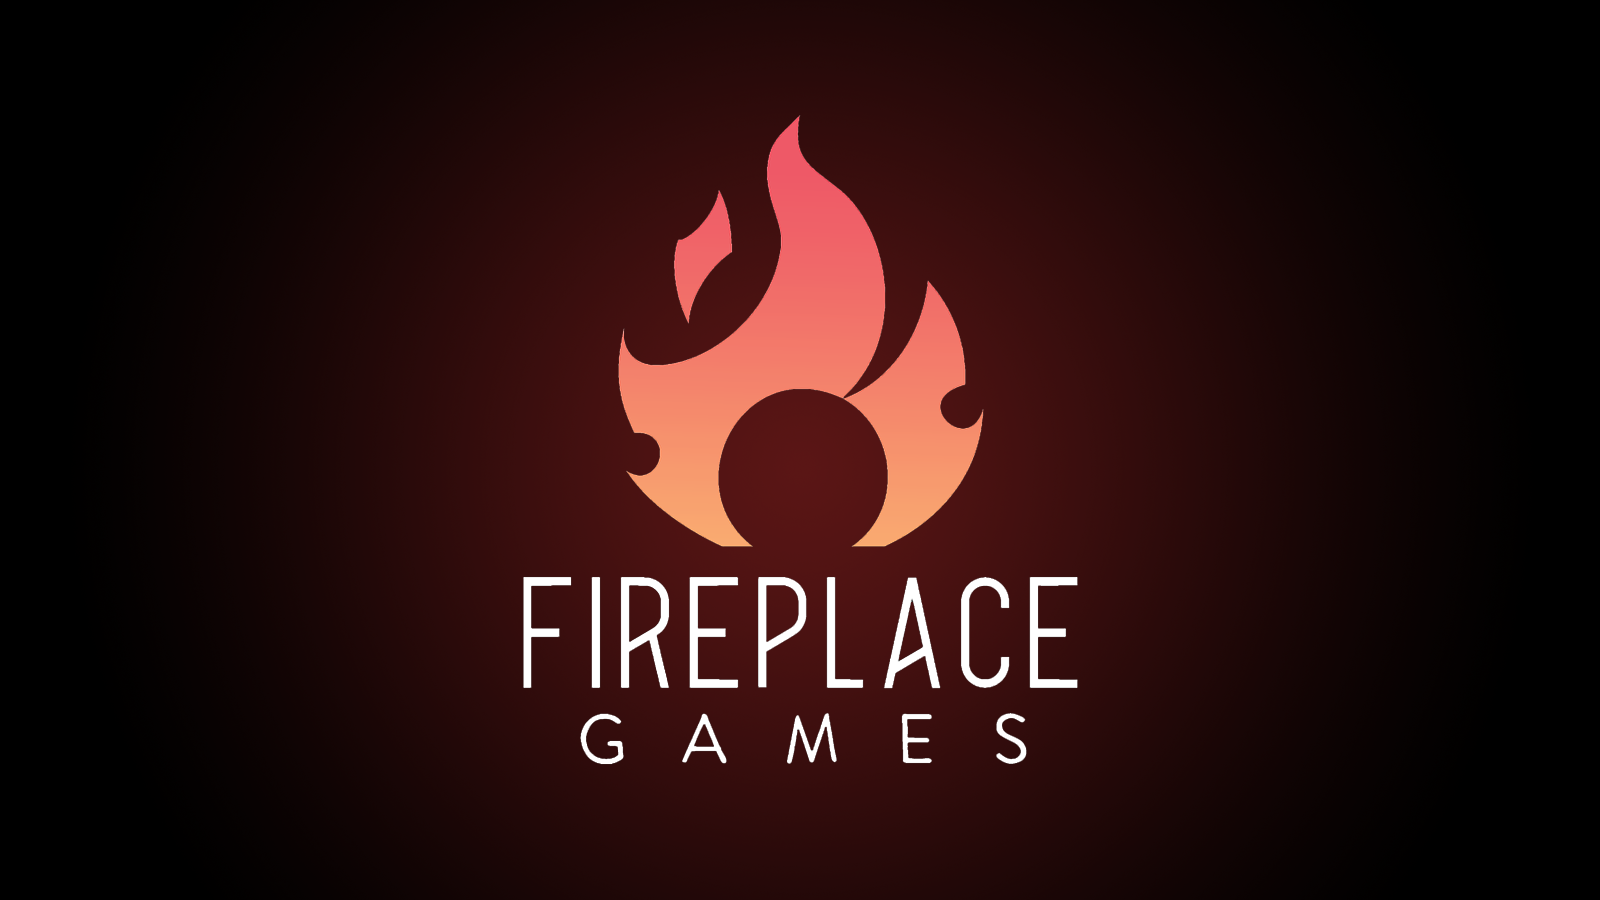 © Fireplace Games